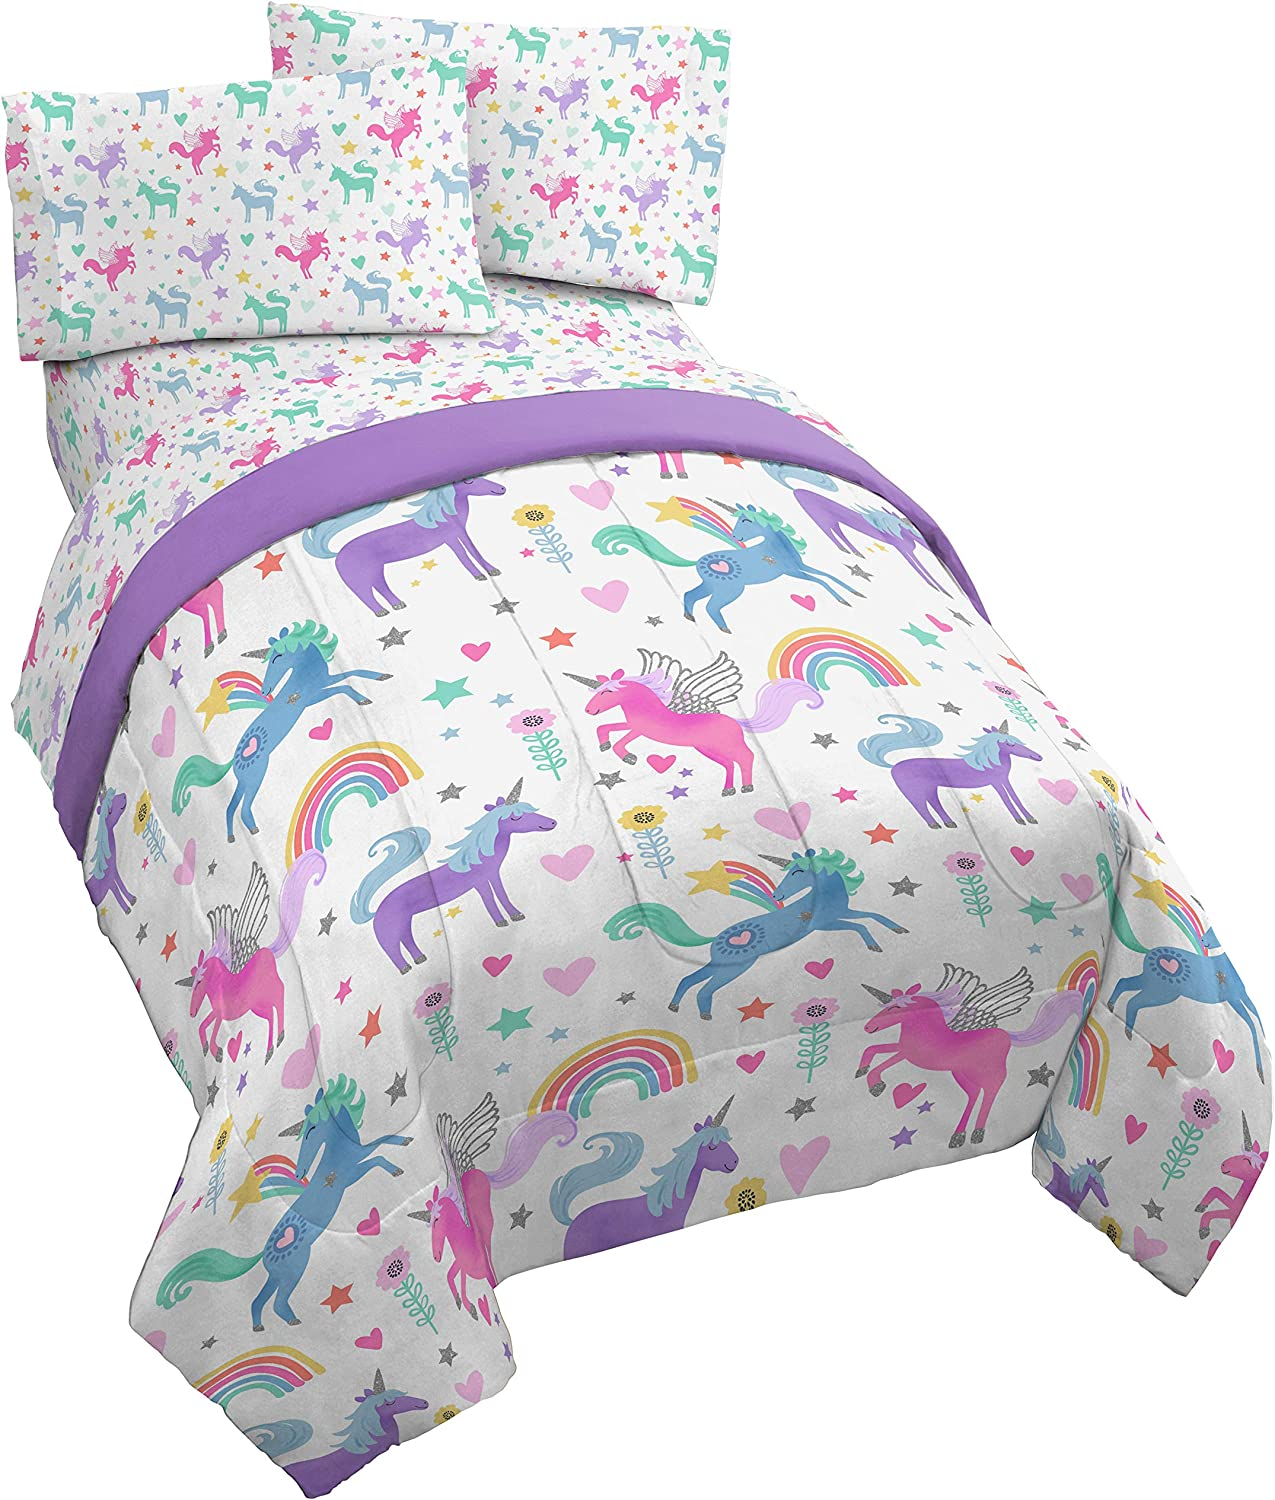 Jay Franco Unicorn Rainbow 4 Piece Twin Bed Set - Includes Comforter & Sheet Set - Super Soft Fade Resistant Microfiber